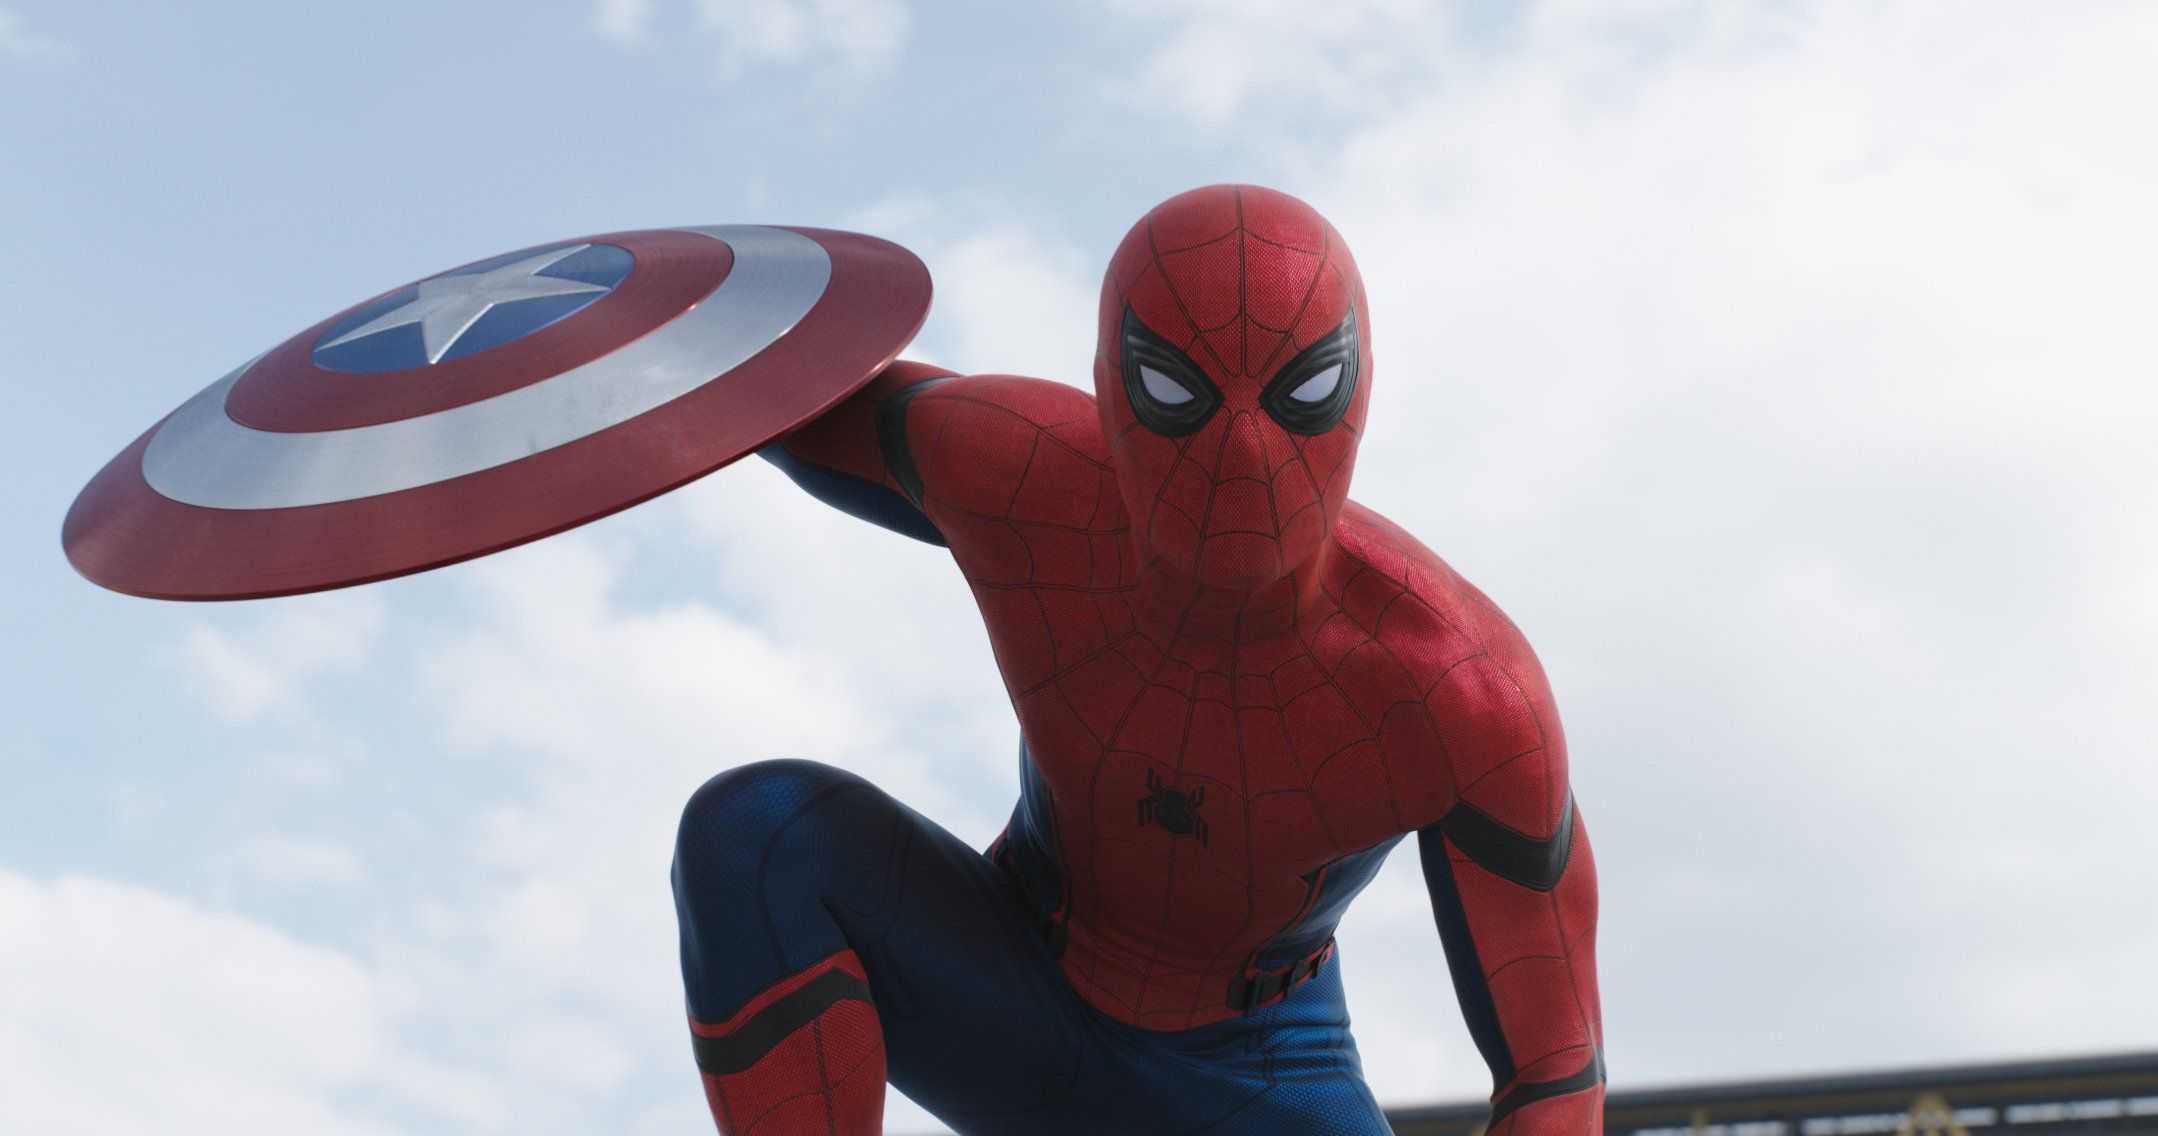 Spider-Man returns to the big screen in Captain America: Civil War